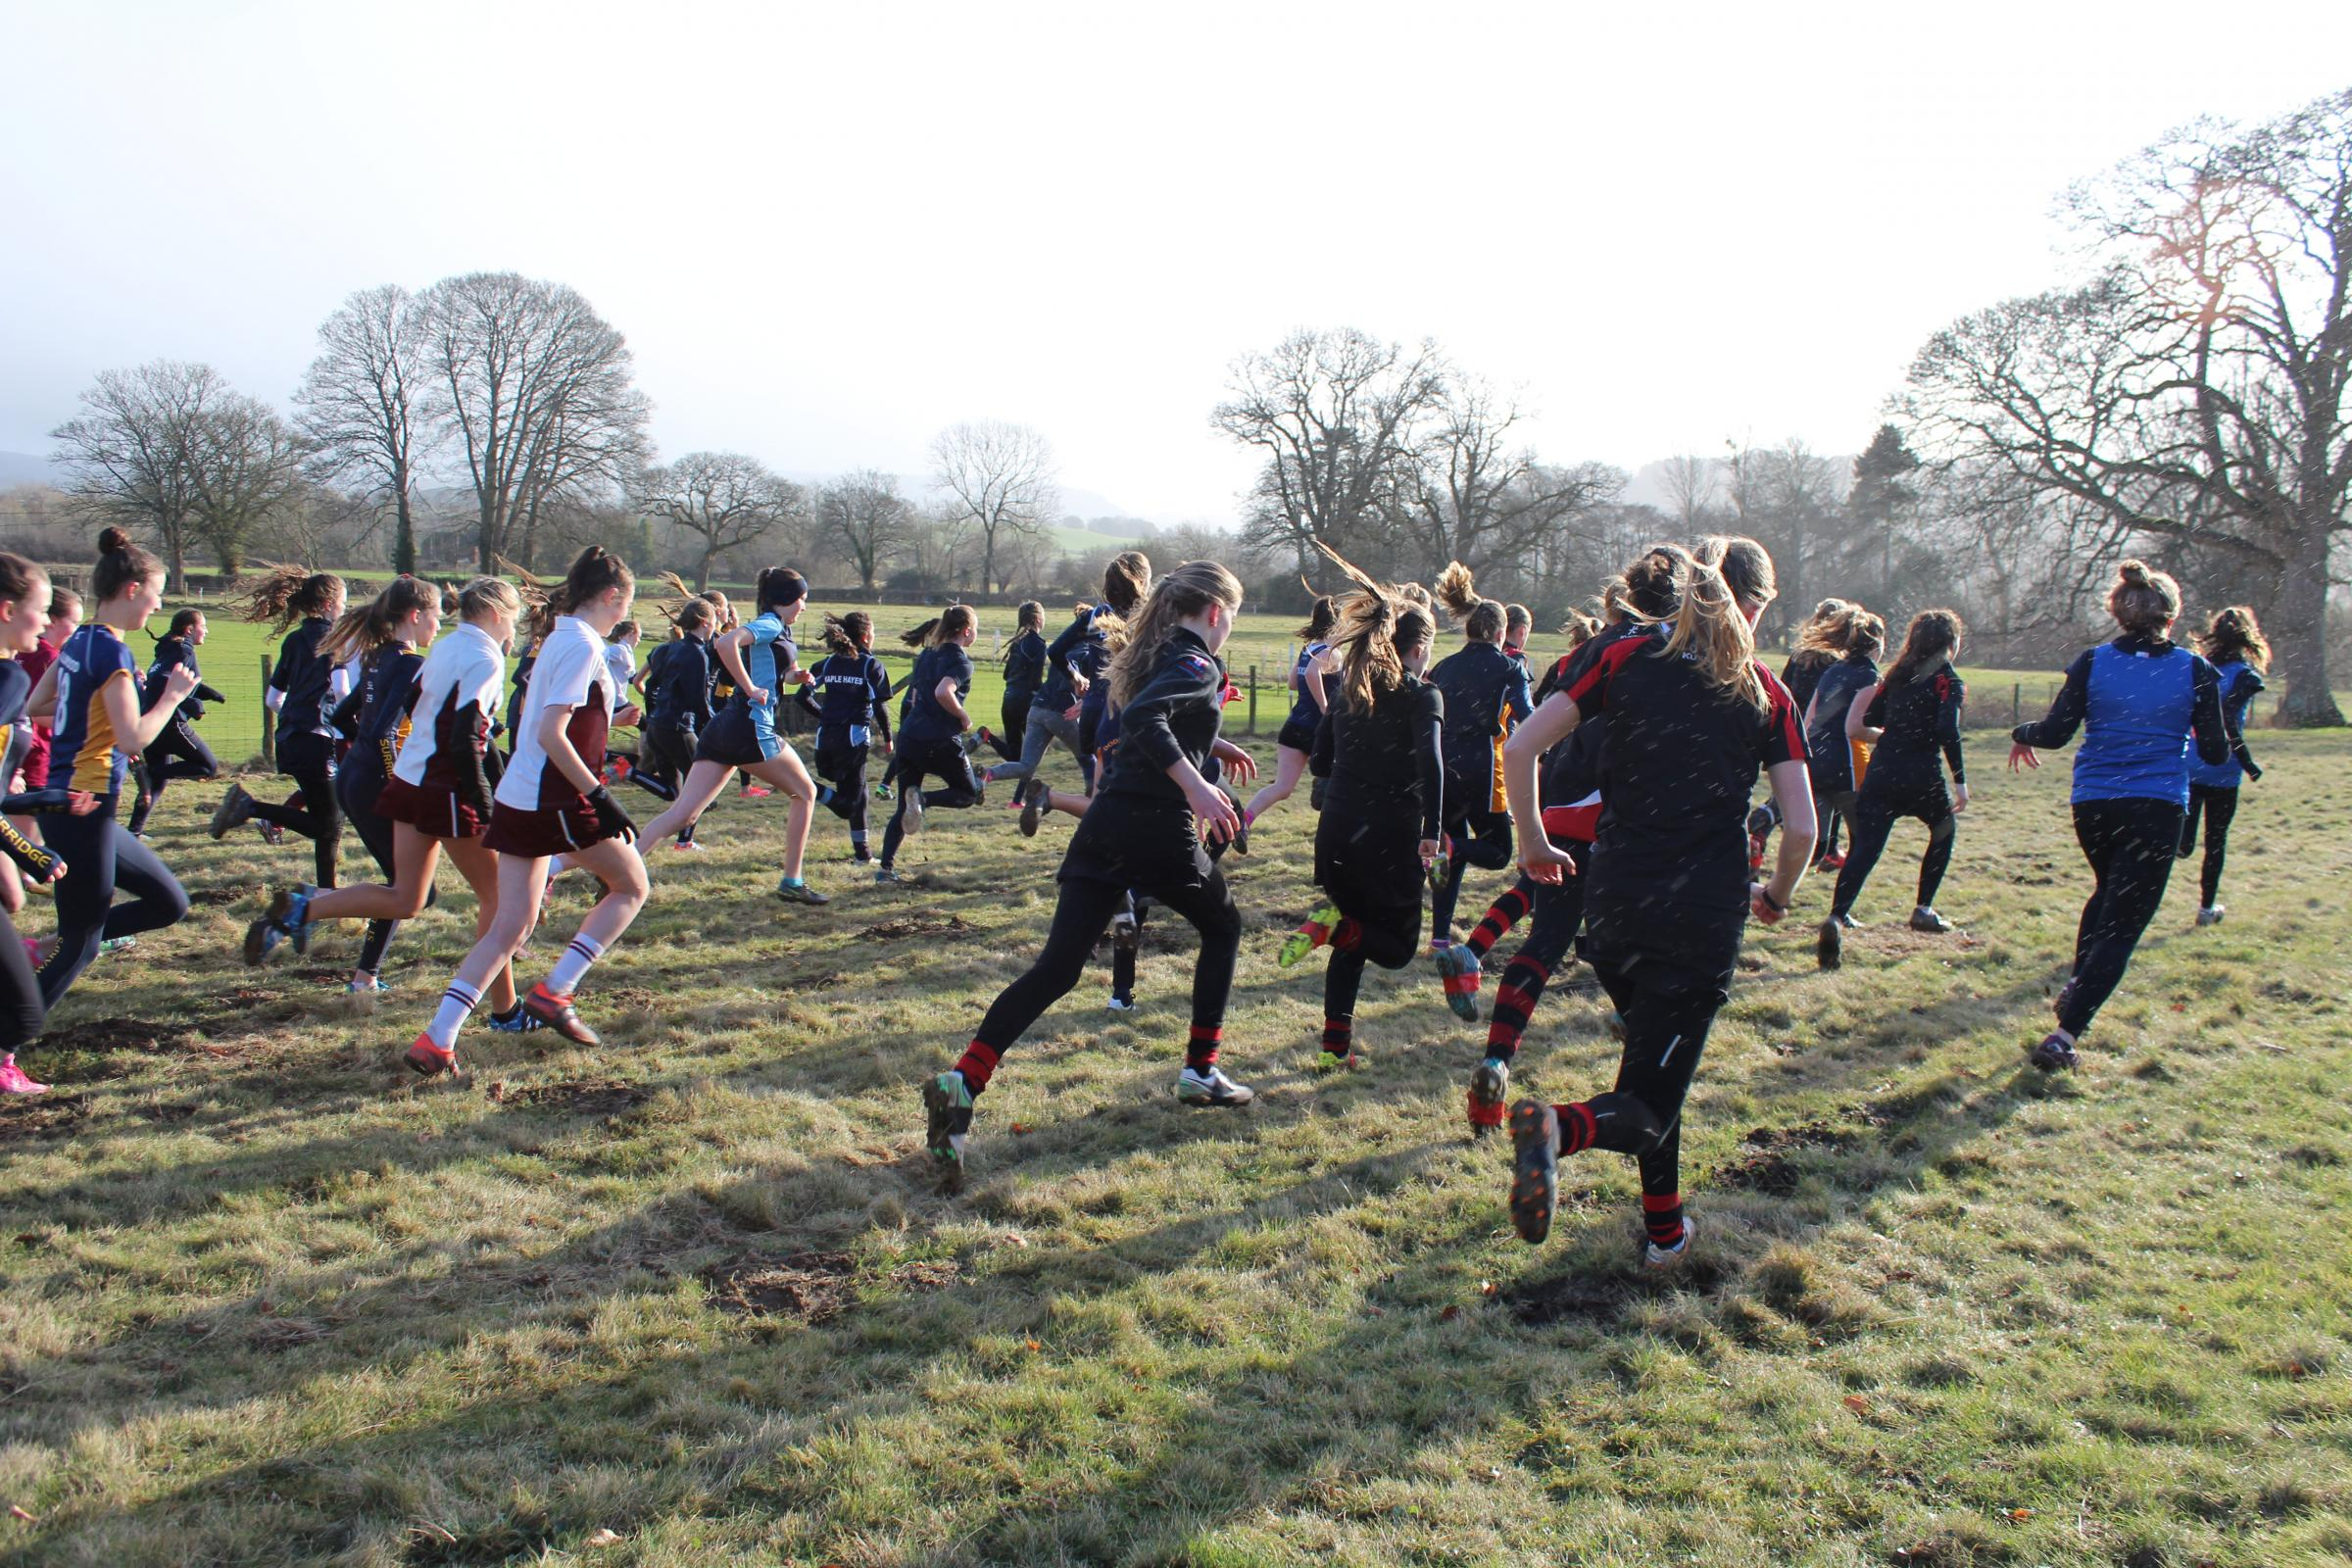 Action from the Midlands Independent Schools Association Cross Country Championships.